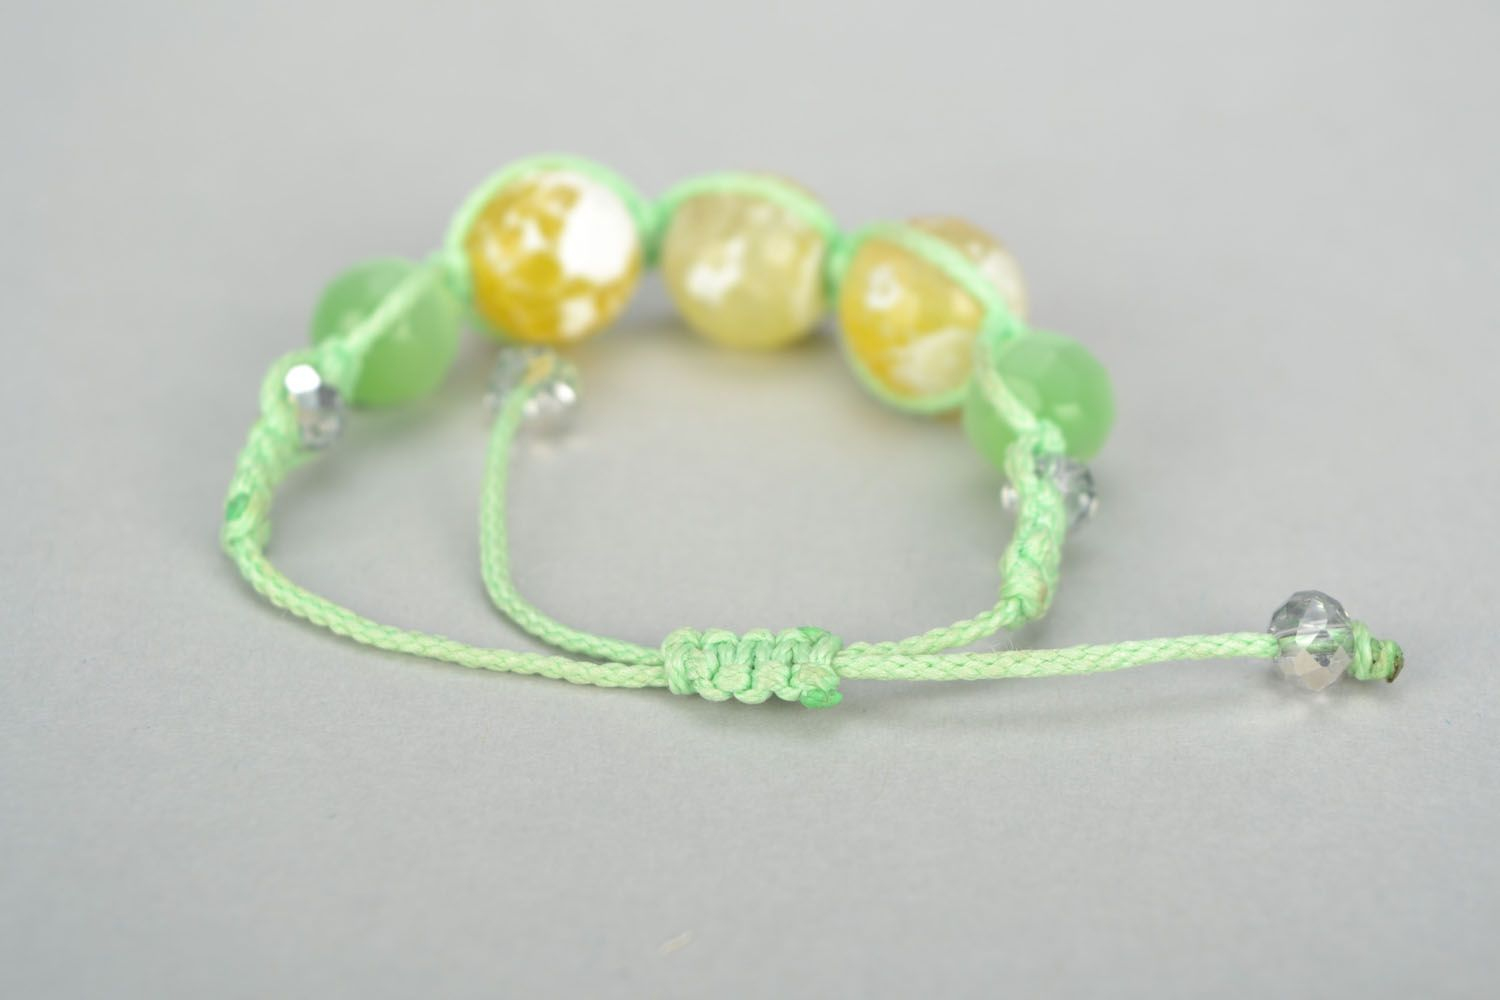 Woven bracelet with cat's eye stone photo 4